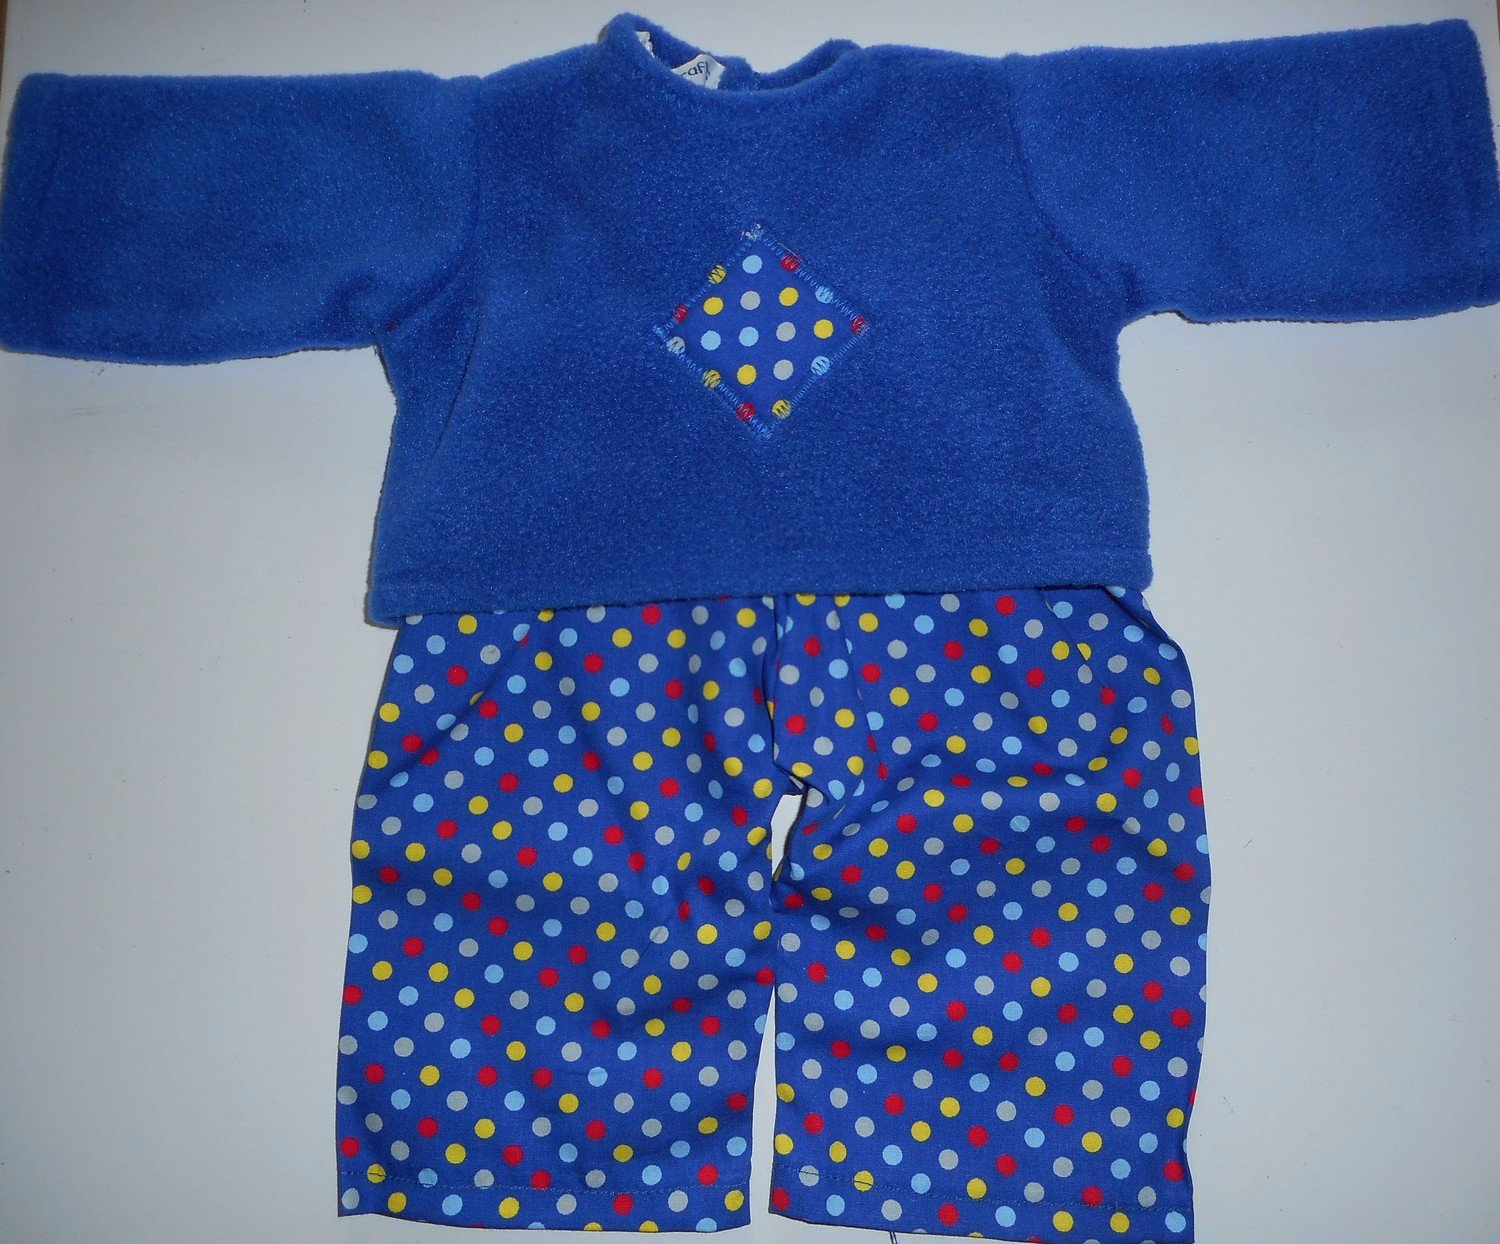 Pyjamas - fleece top and fabric trousers - royal blue